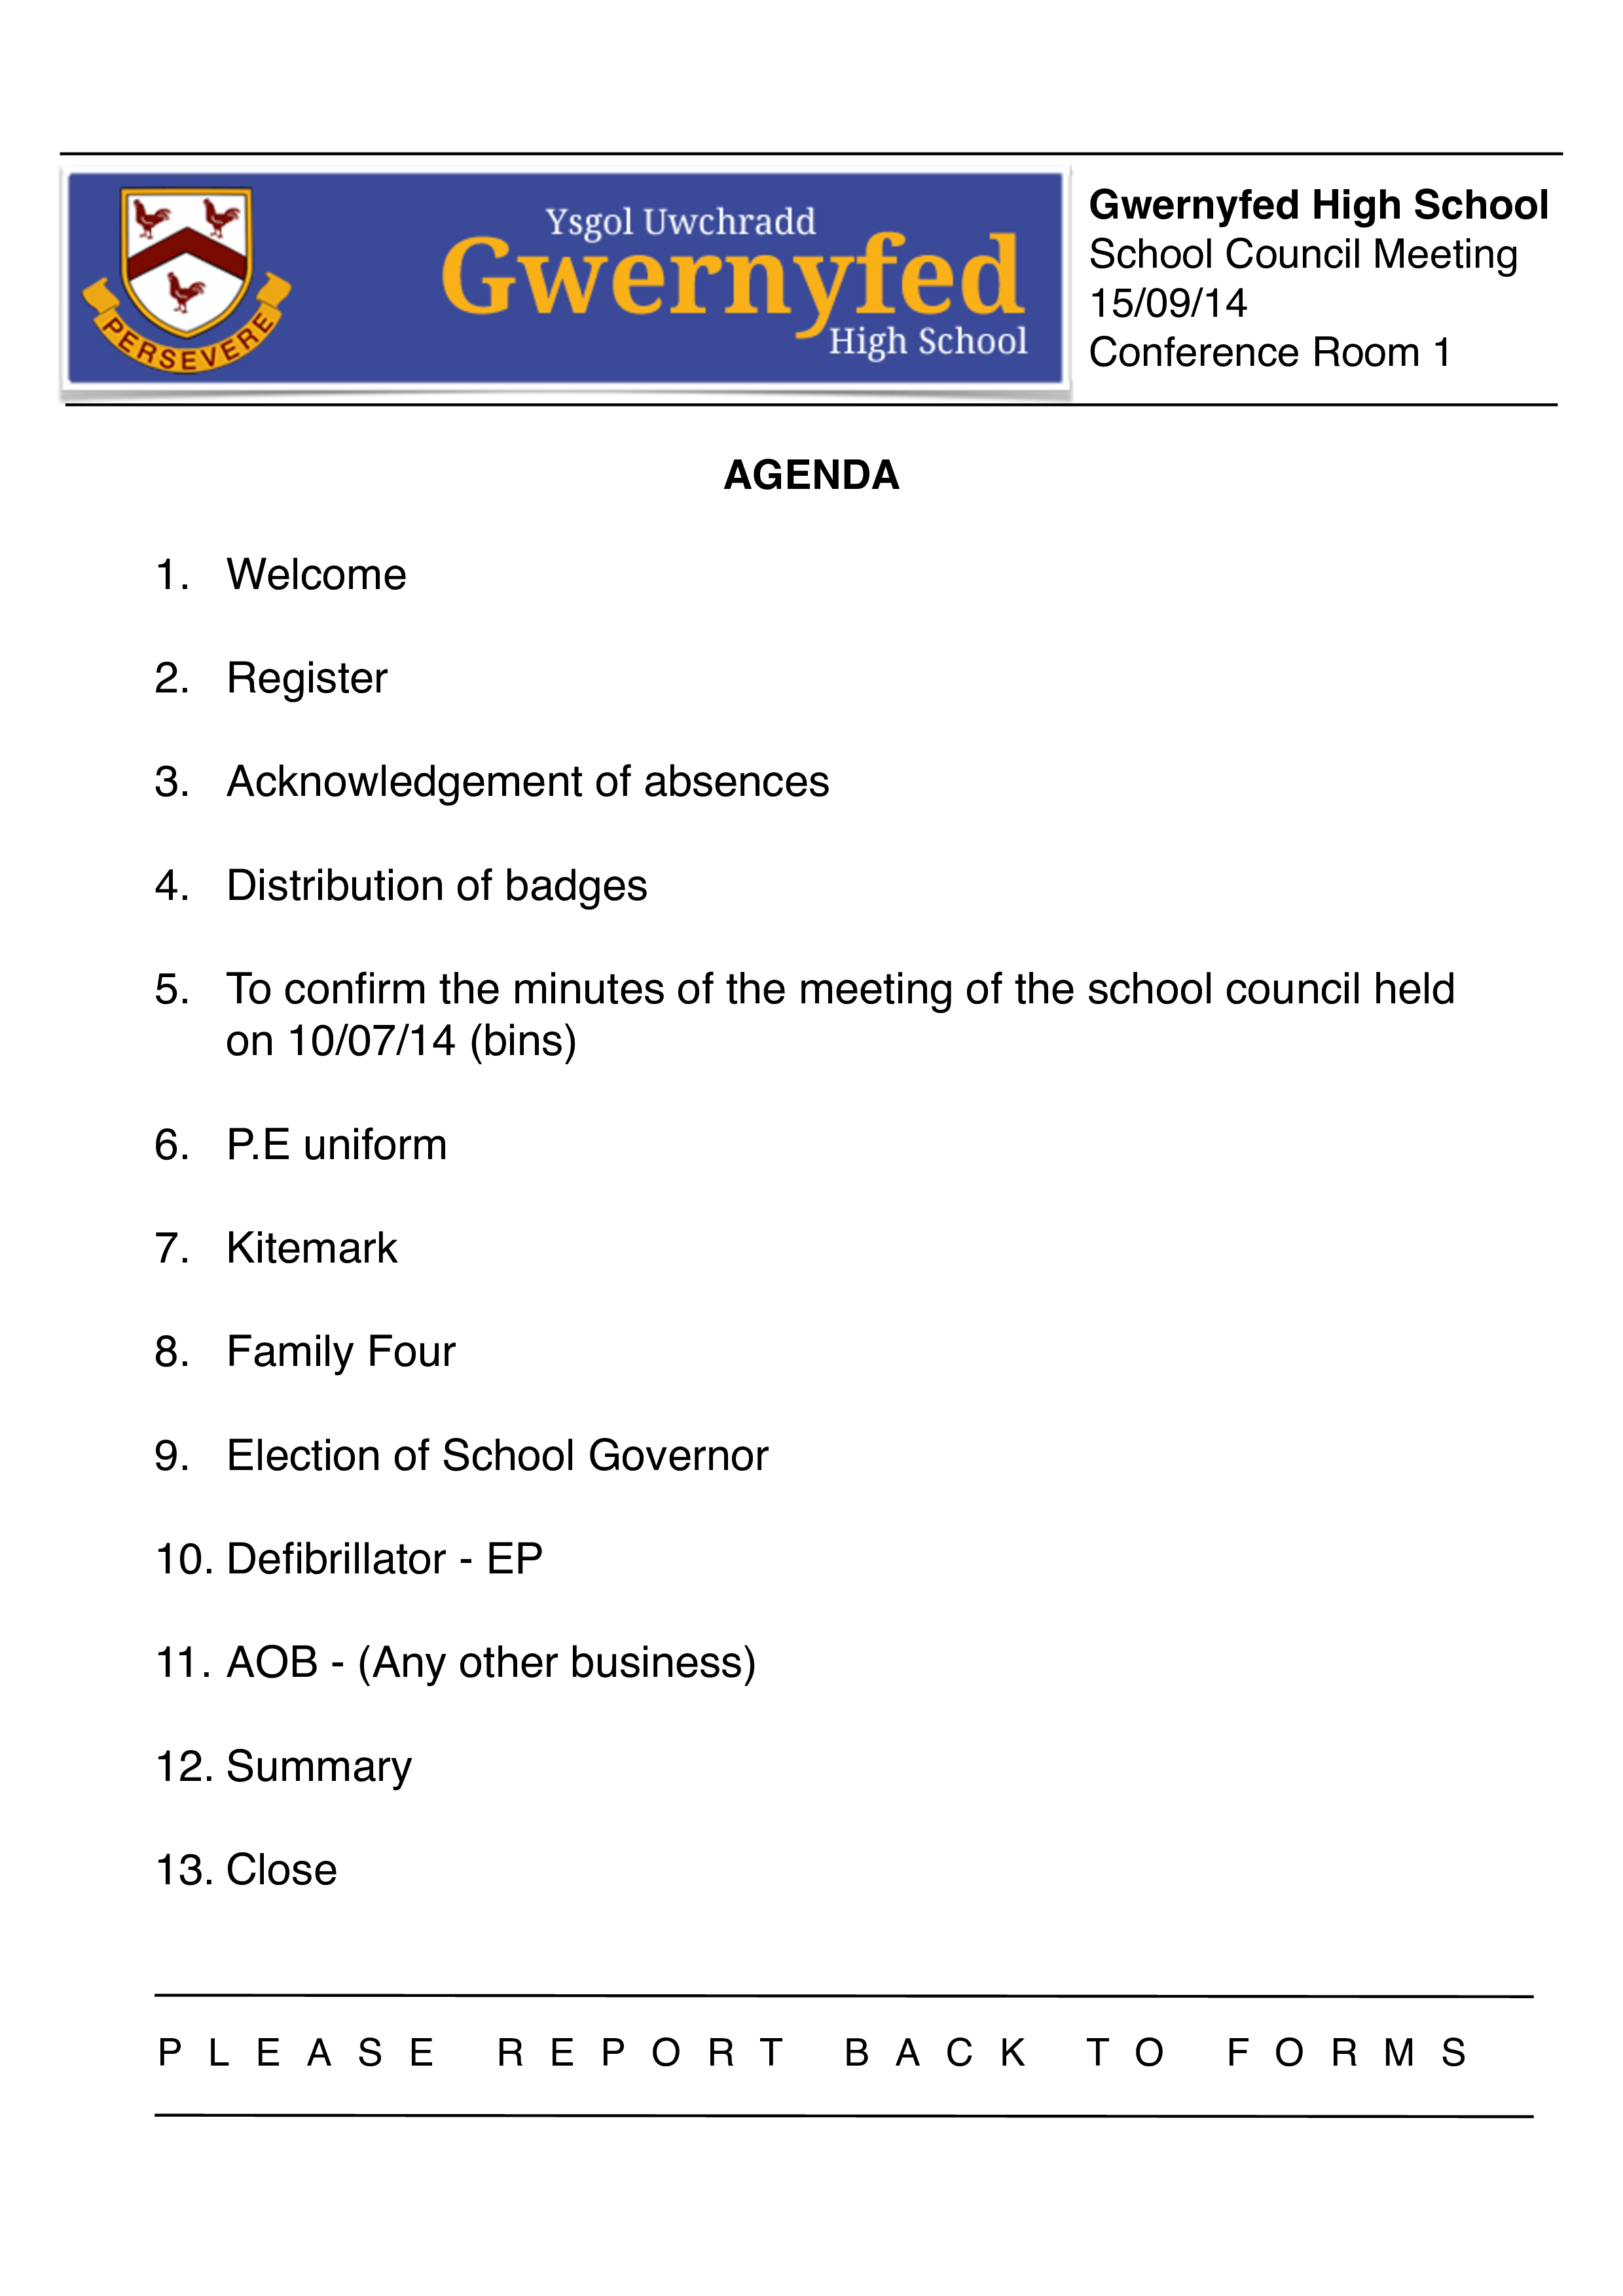 School Council Meeting Agenda Template main image